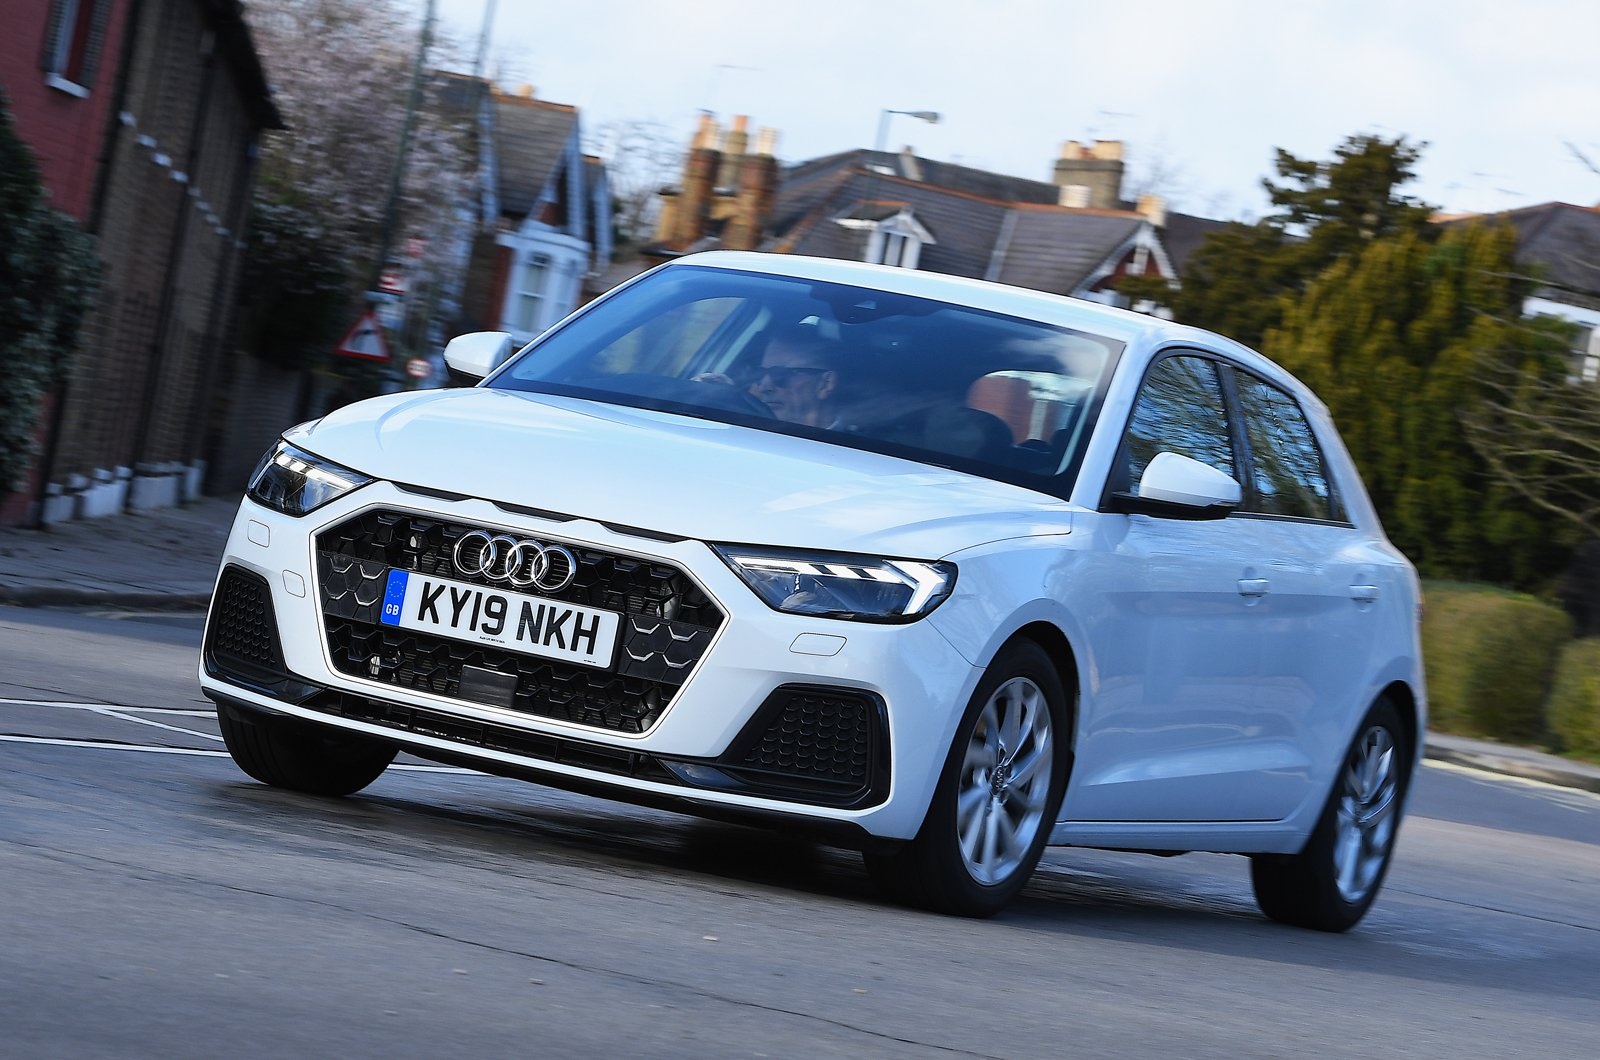 Audi A1 front - white 19-plate car